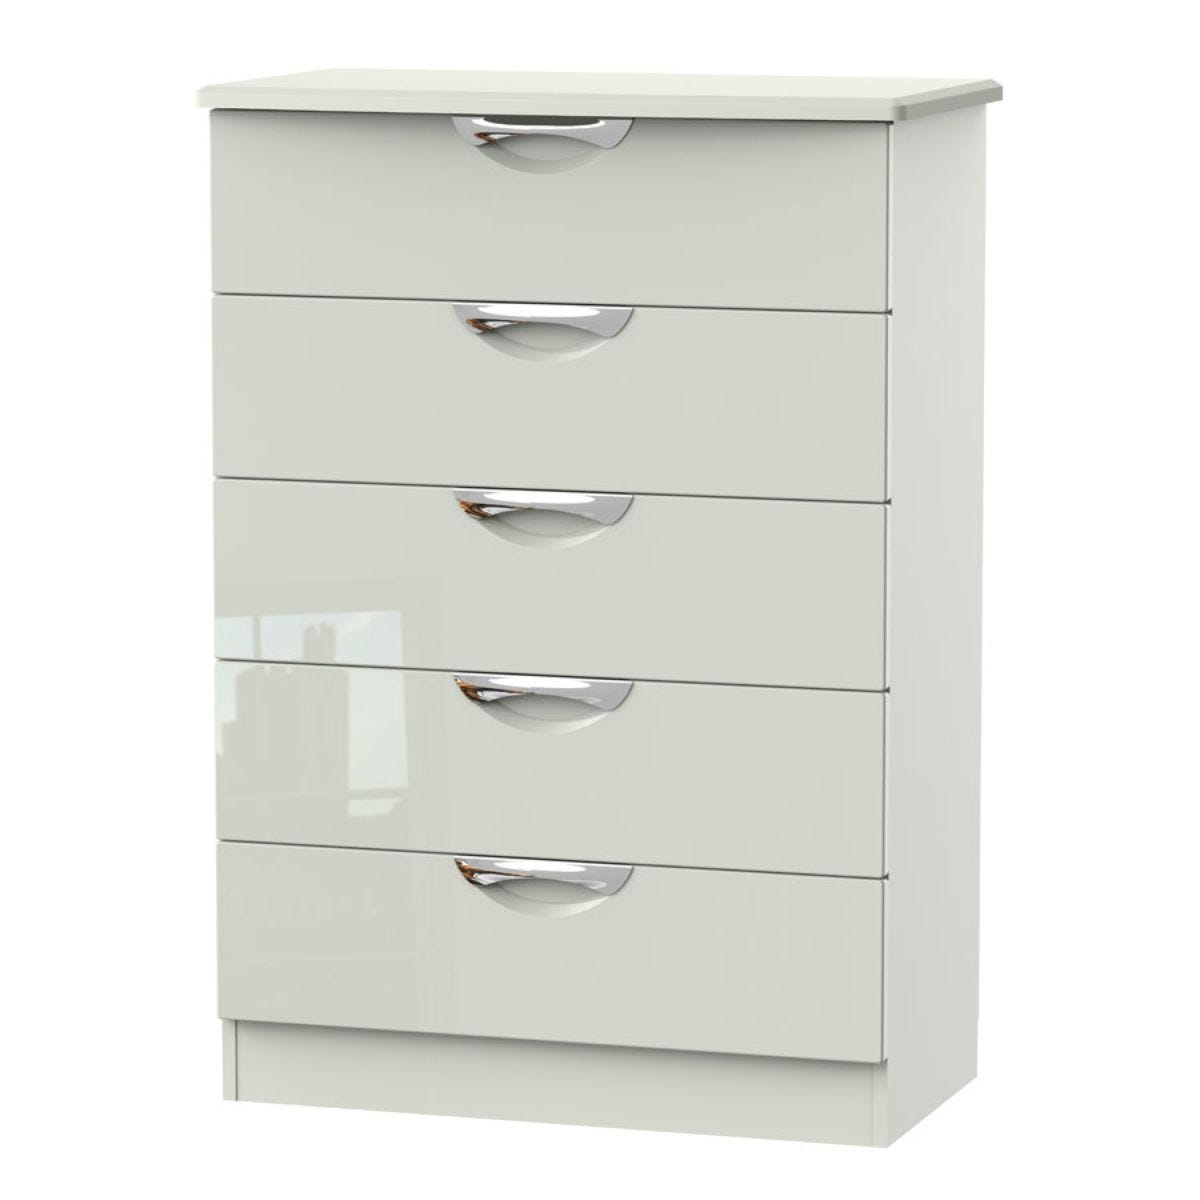 Indices 5-Drawer Chest of Drawers - White/Grey